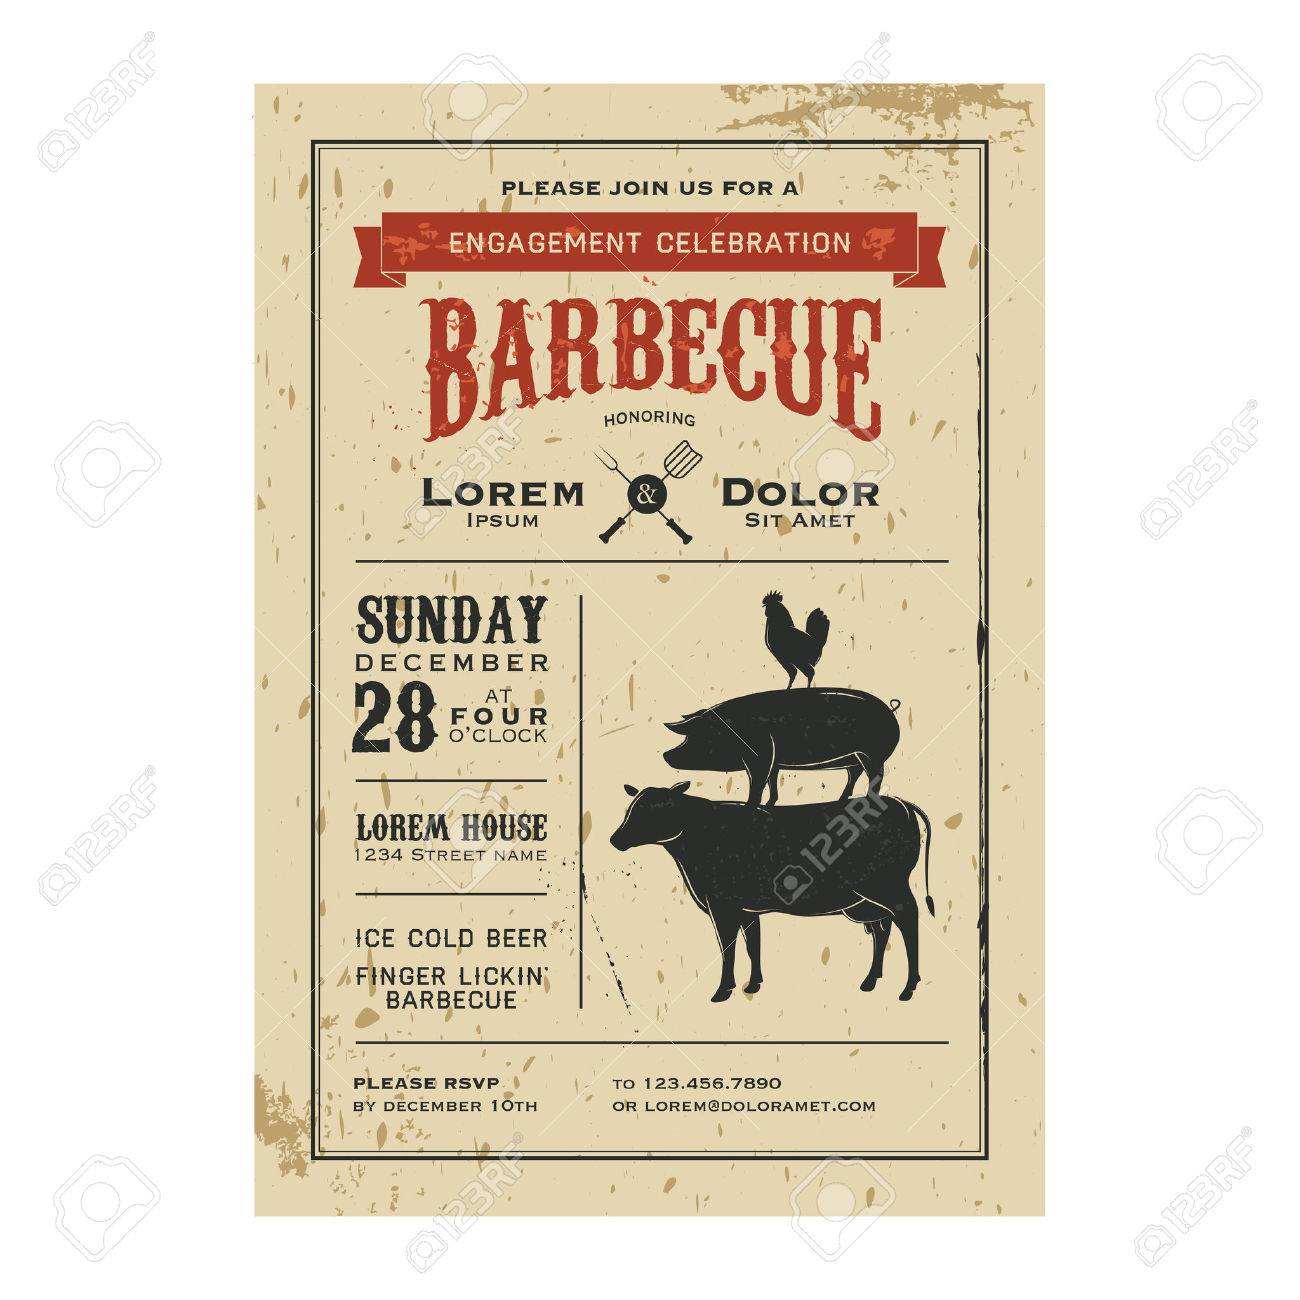 Vintage barbecue invitation card on old grunge paper royalty free imagens vintage barbecue invitation card on old grunge paper stopboris Choice Image